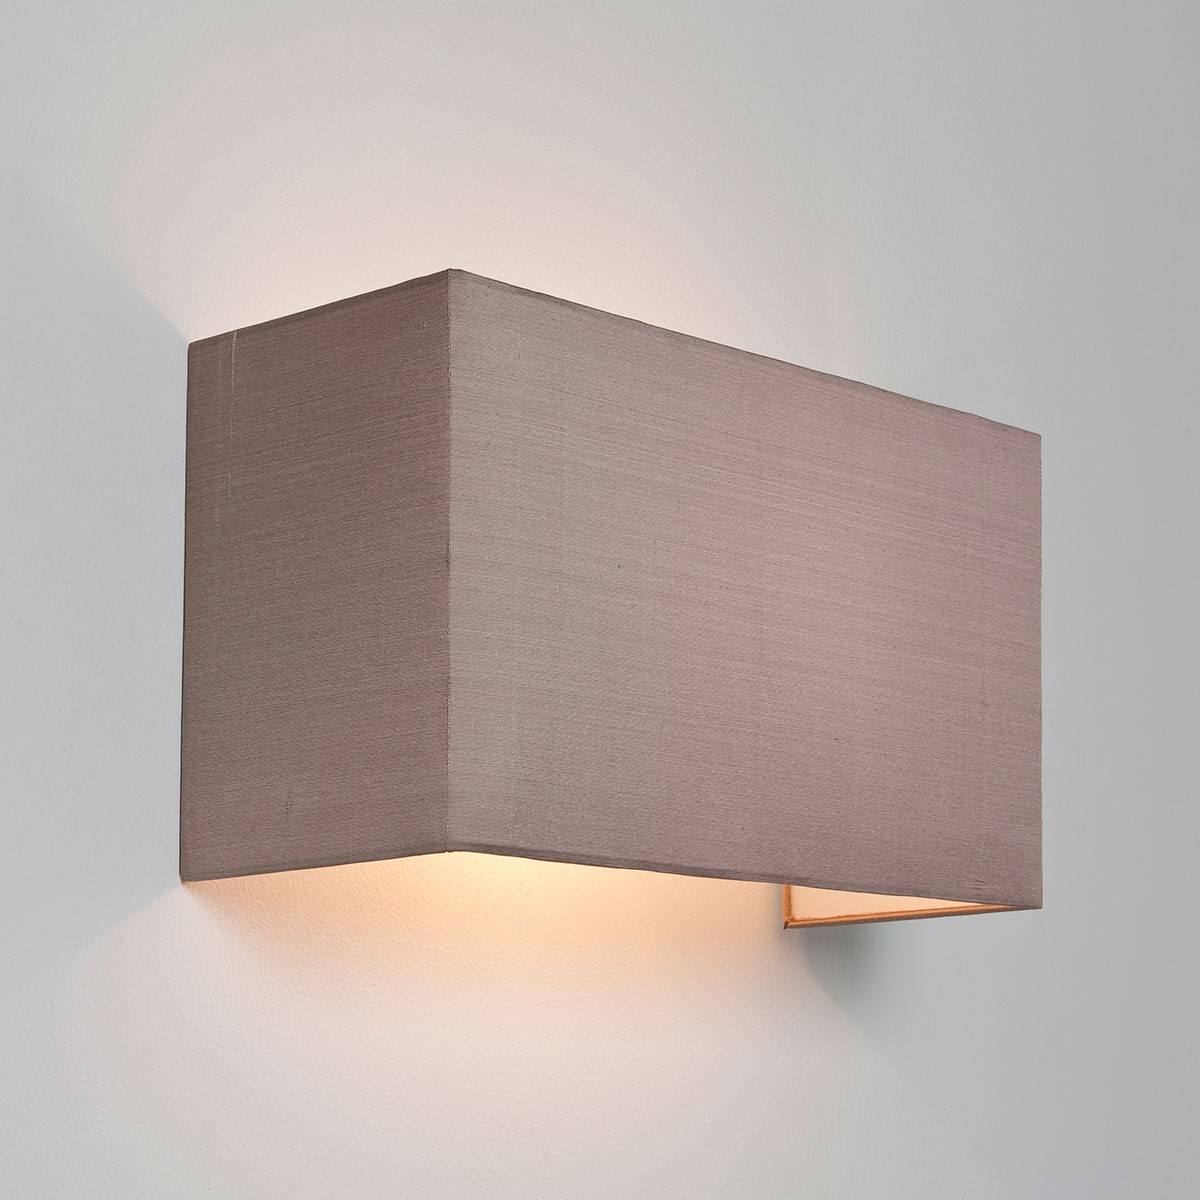 Astro chuo 190 oyster fabric shade at uk electrical supplies for What does light filtering blinds mean